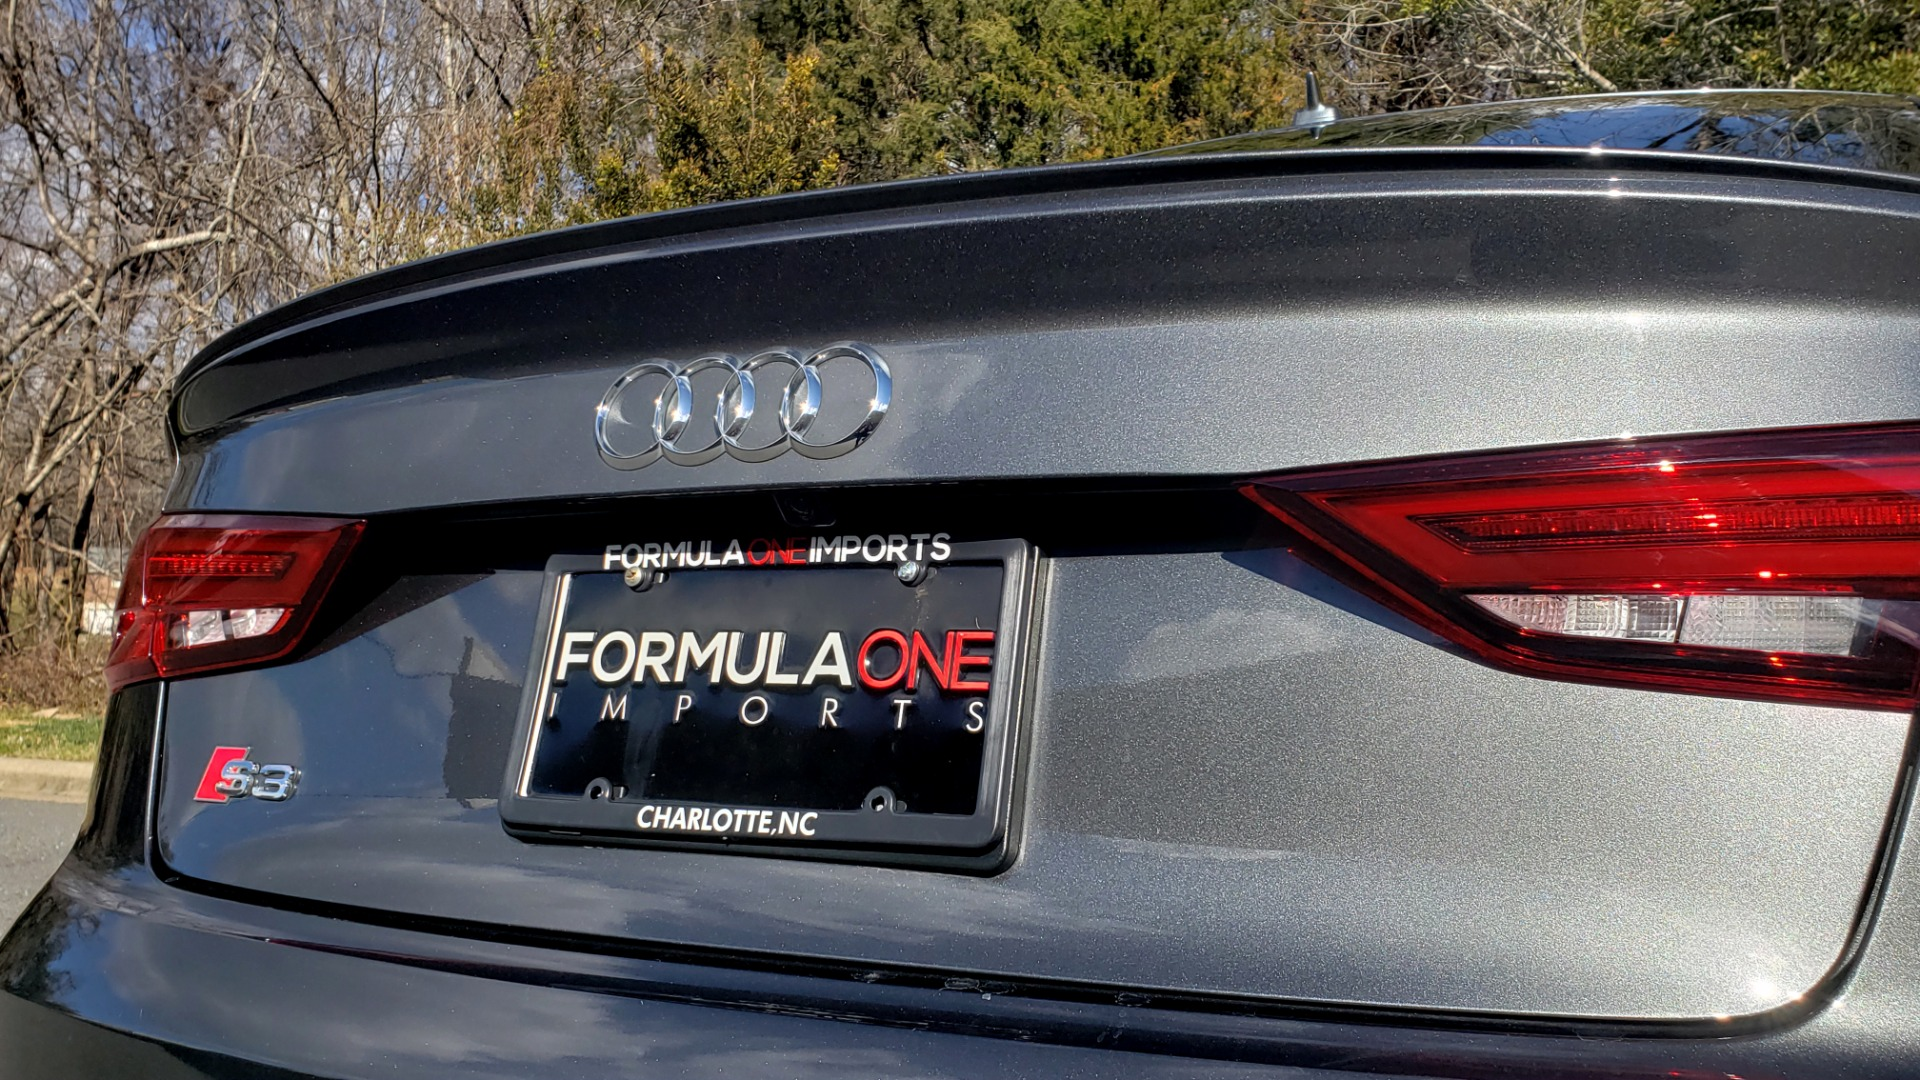 Used 2018 Audi S3 PREMIUM PLUS / TECH / NAV / BLACK OPTIC / S-SPORT / REARVIEW for sale $32,995 at Formula Imports in Charlotte NC 28227 27